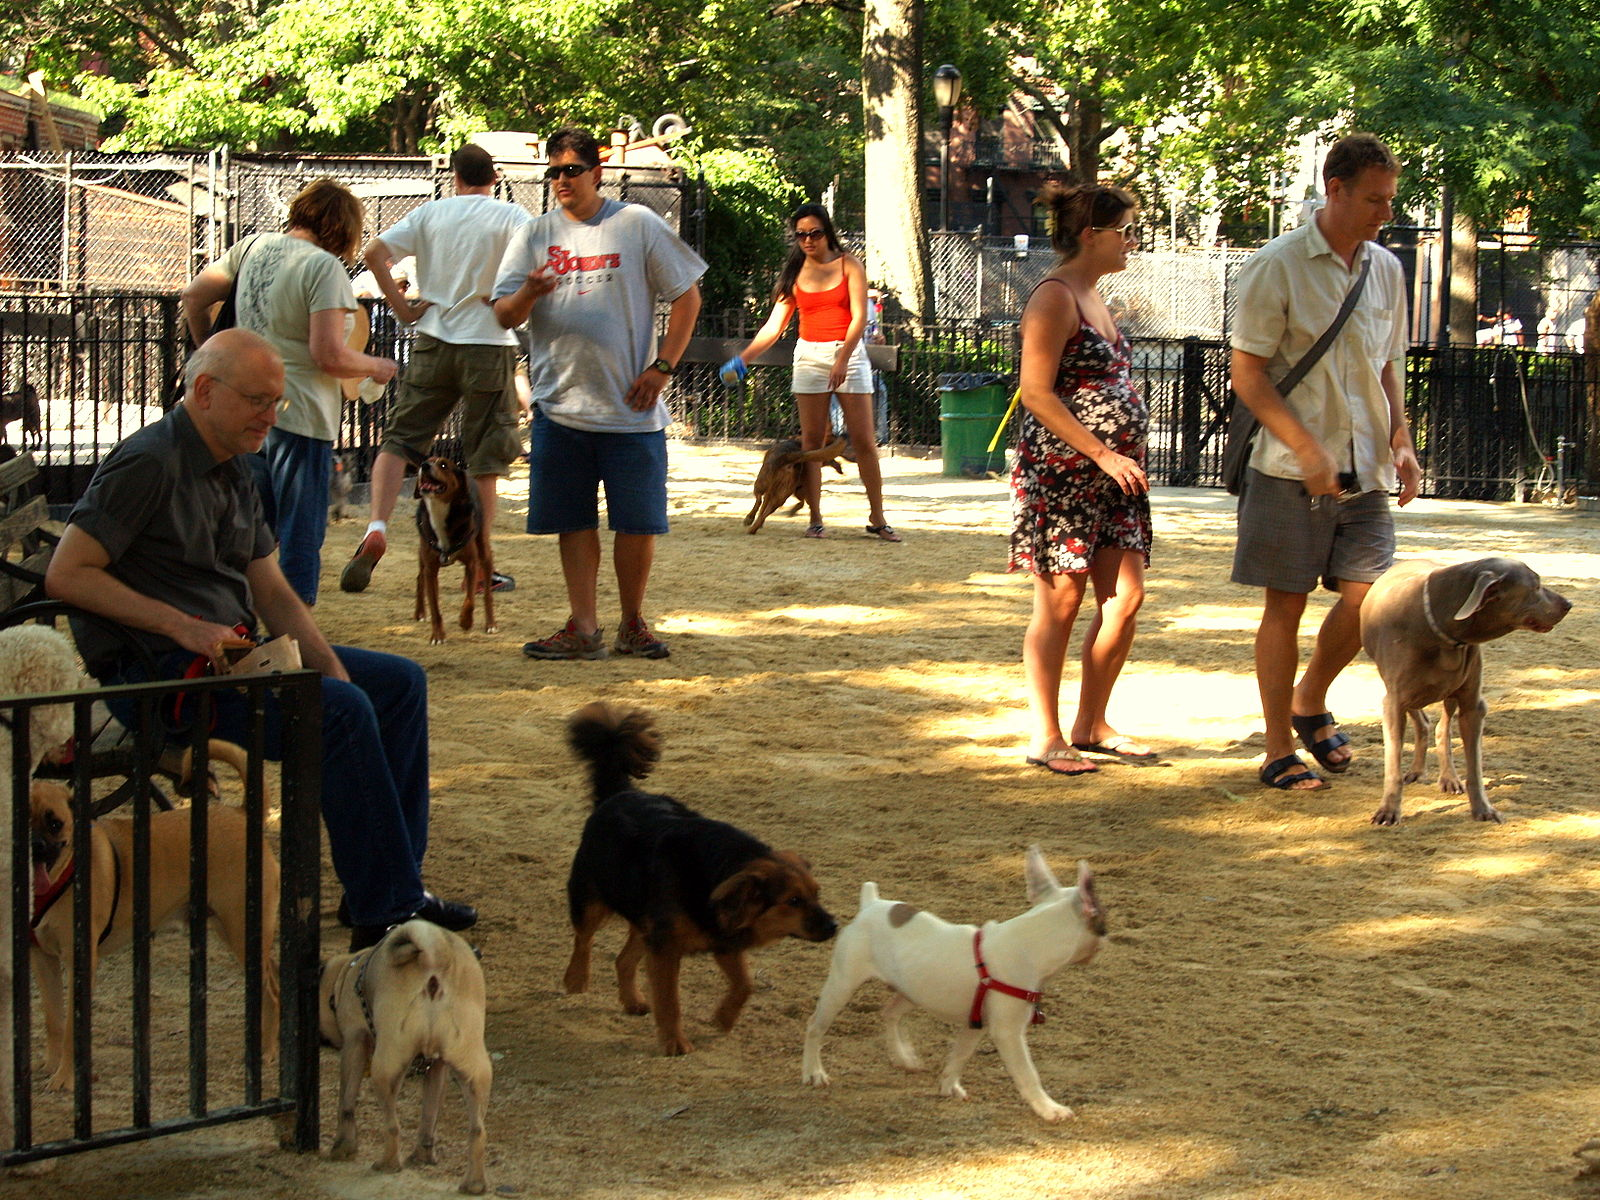 Demand for private dog parks is growing, and owners are willing to pay David Shankbonecreator QS:P170,Q12899557,Tompkins Square Big Dog Run,CC BY-SA 3.0